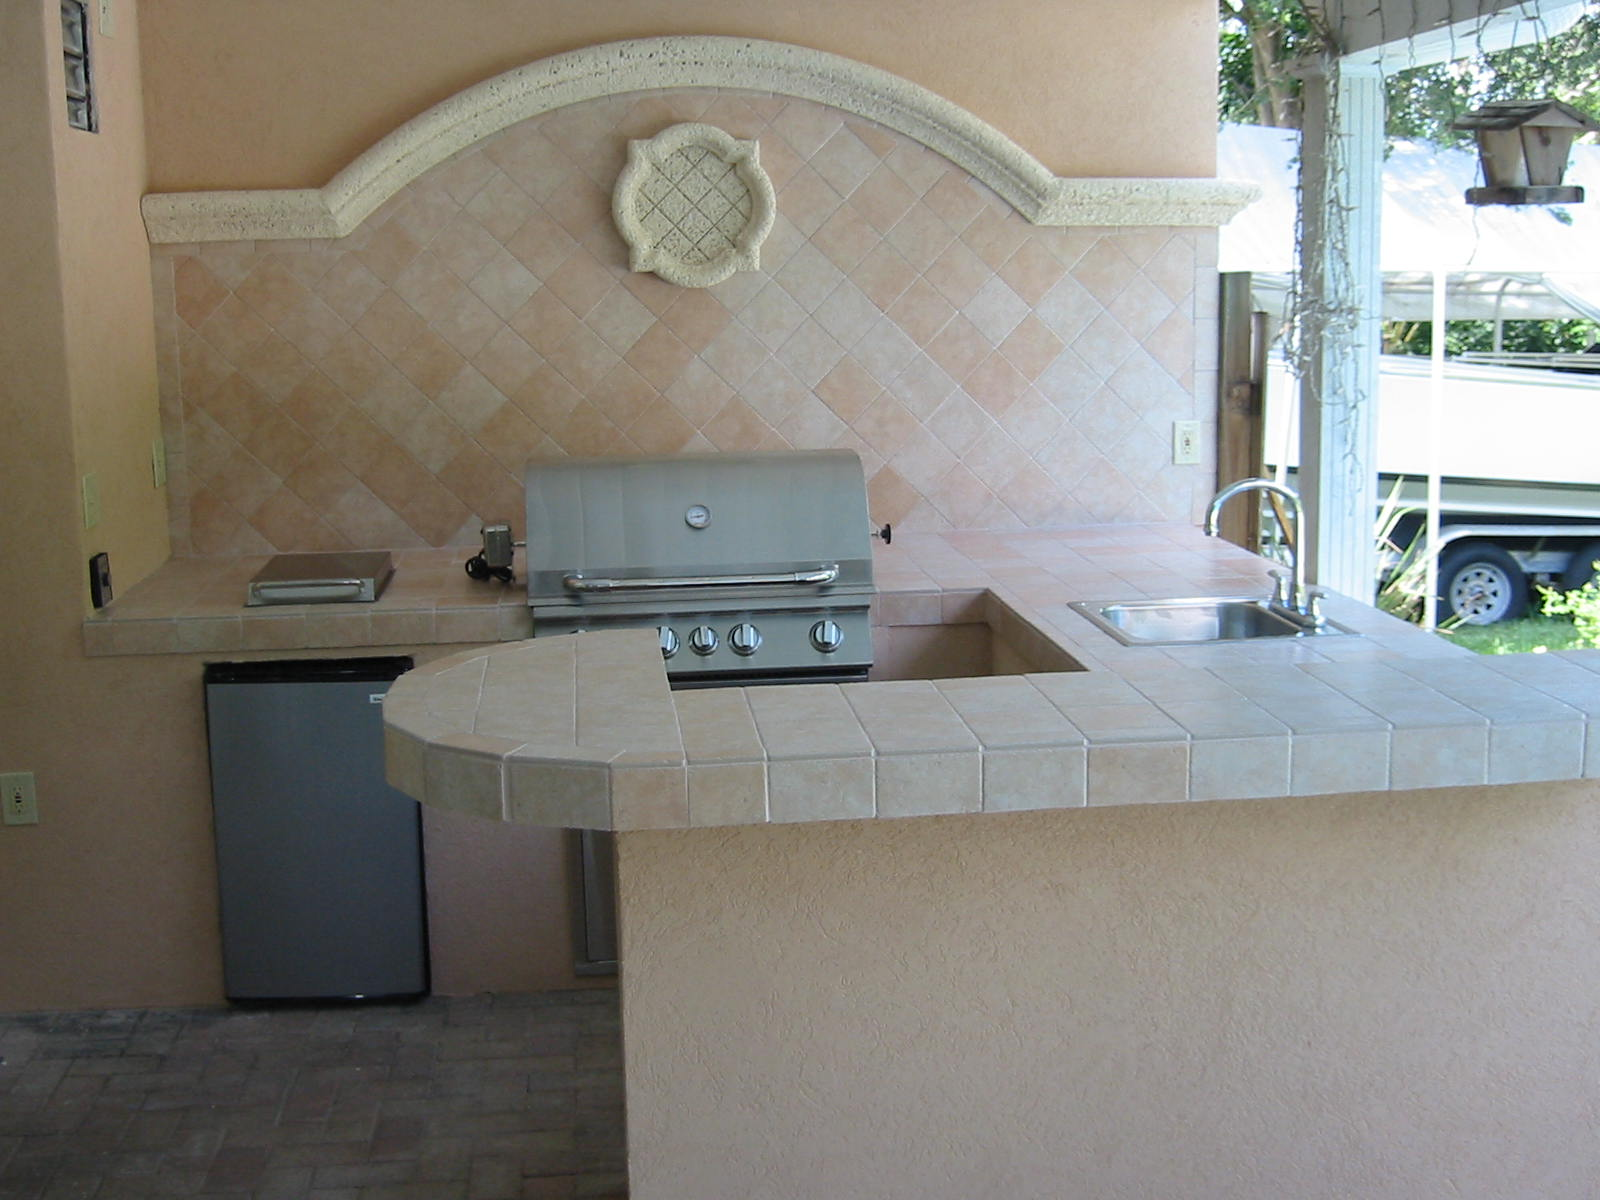 More outdoor kitchen grill island designs with built in bbq grills